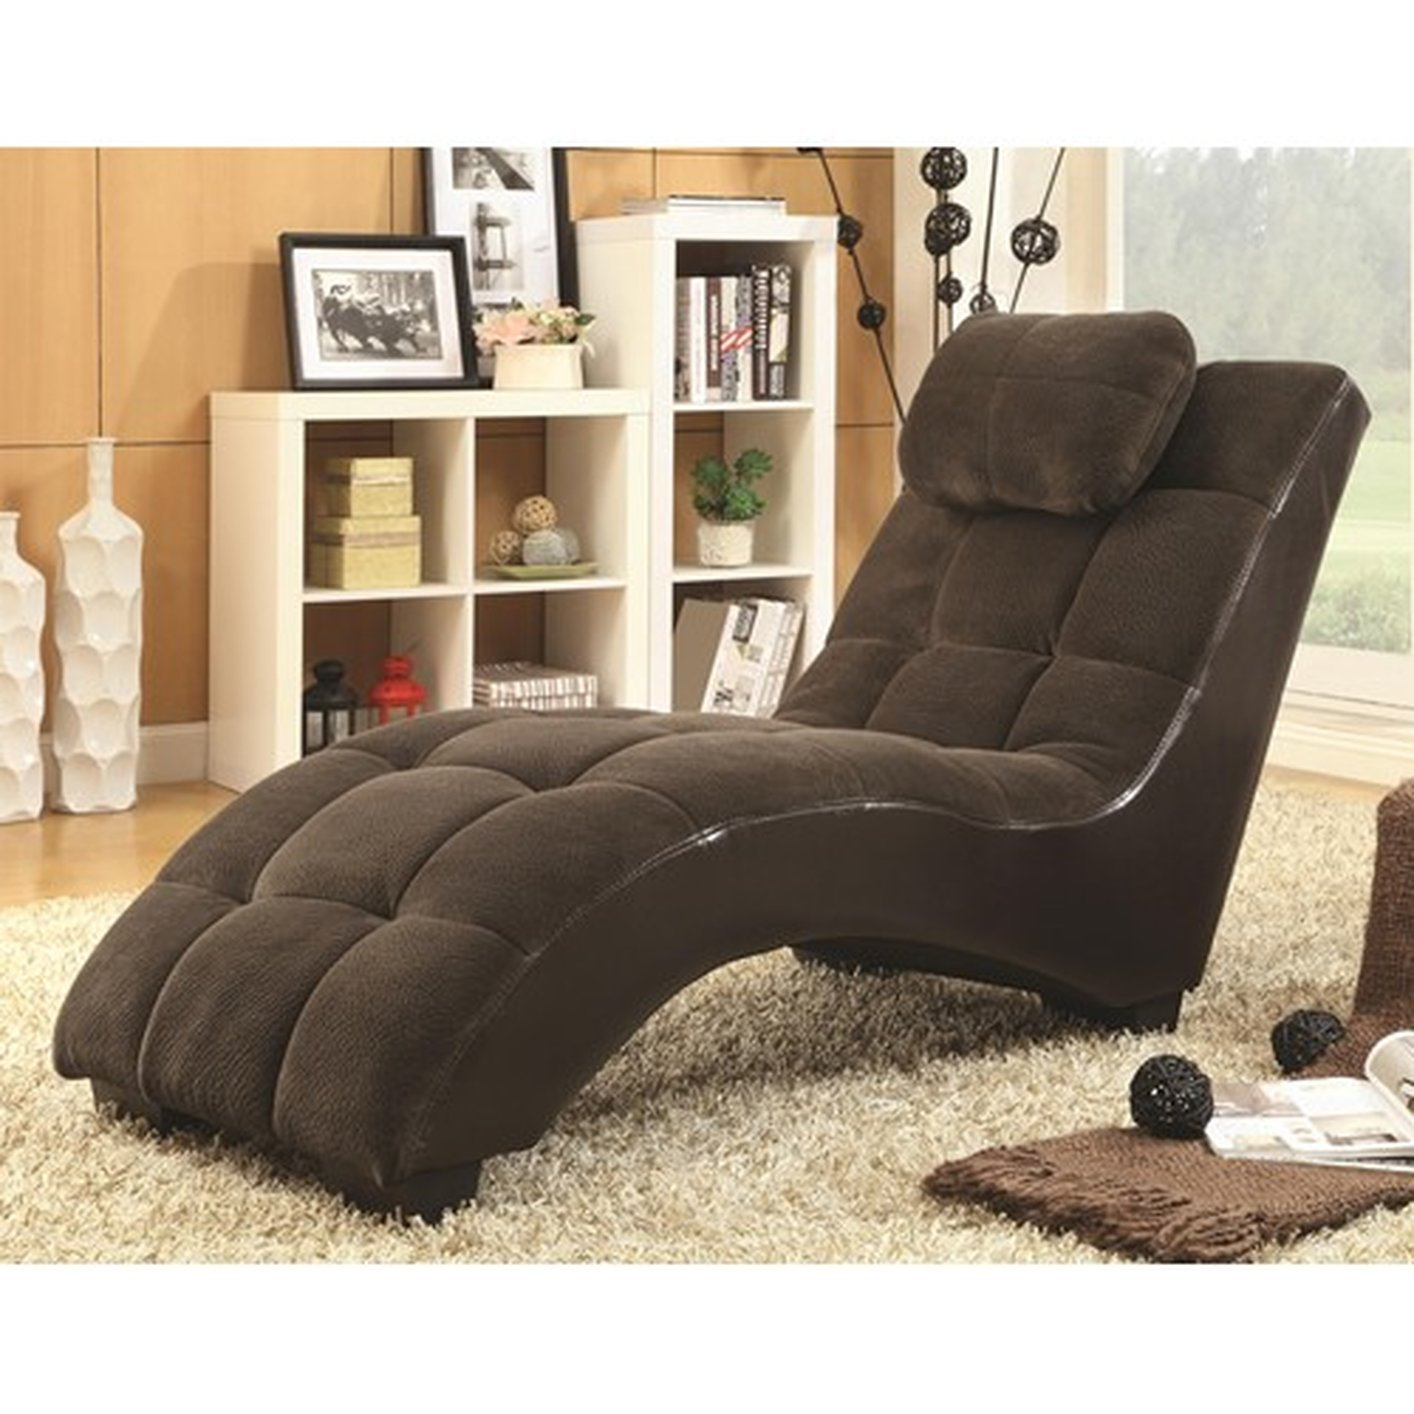 taffette designs lounge nice chaise brown indoor building